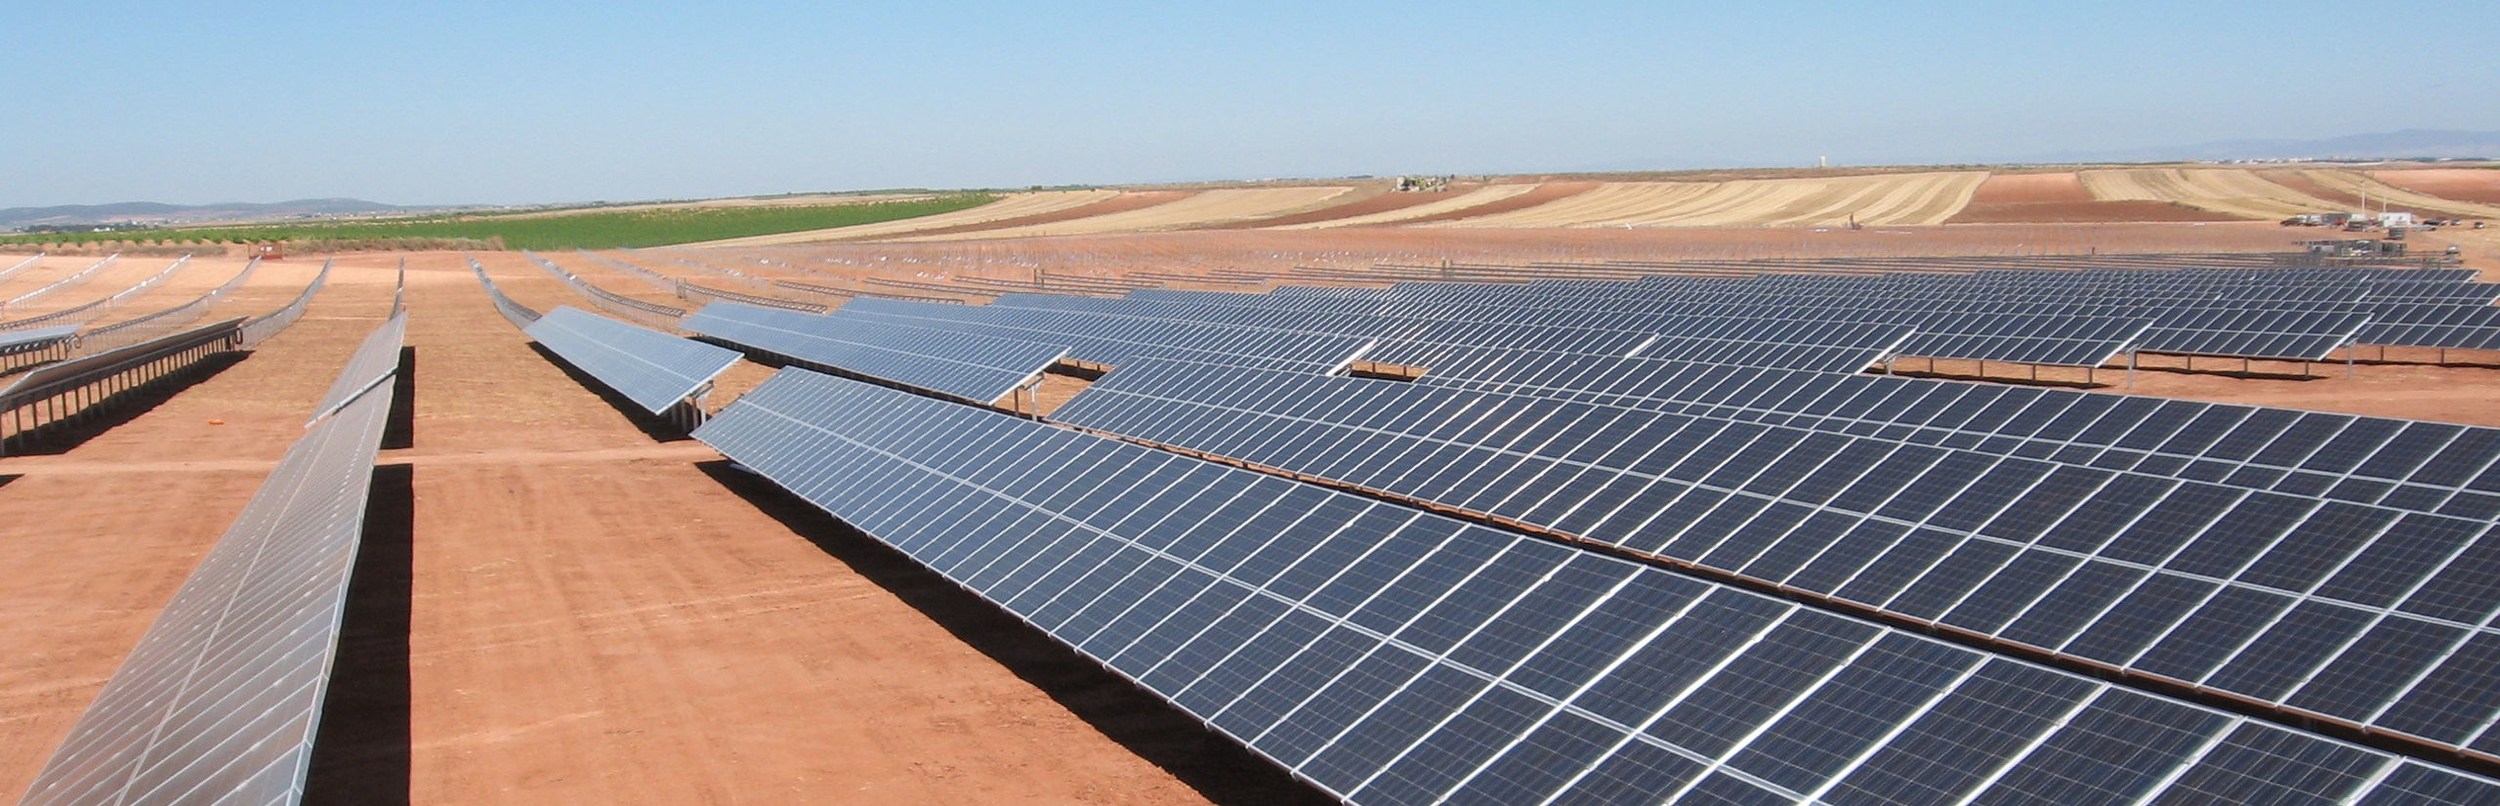 3 MW Solar Photovoltaic for the Park National Laboratory Complex for the Government of the Republic of Sierra Leon